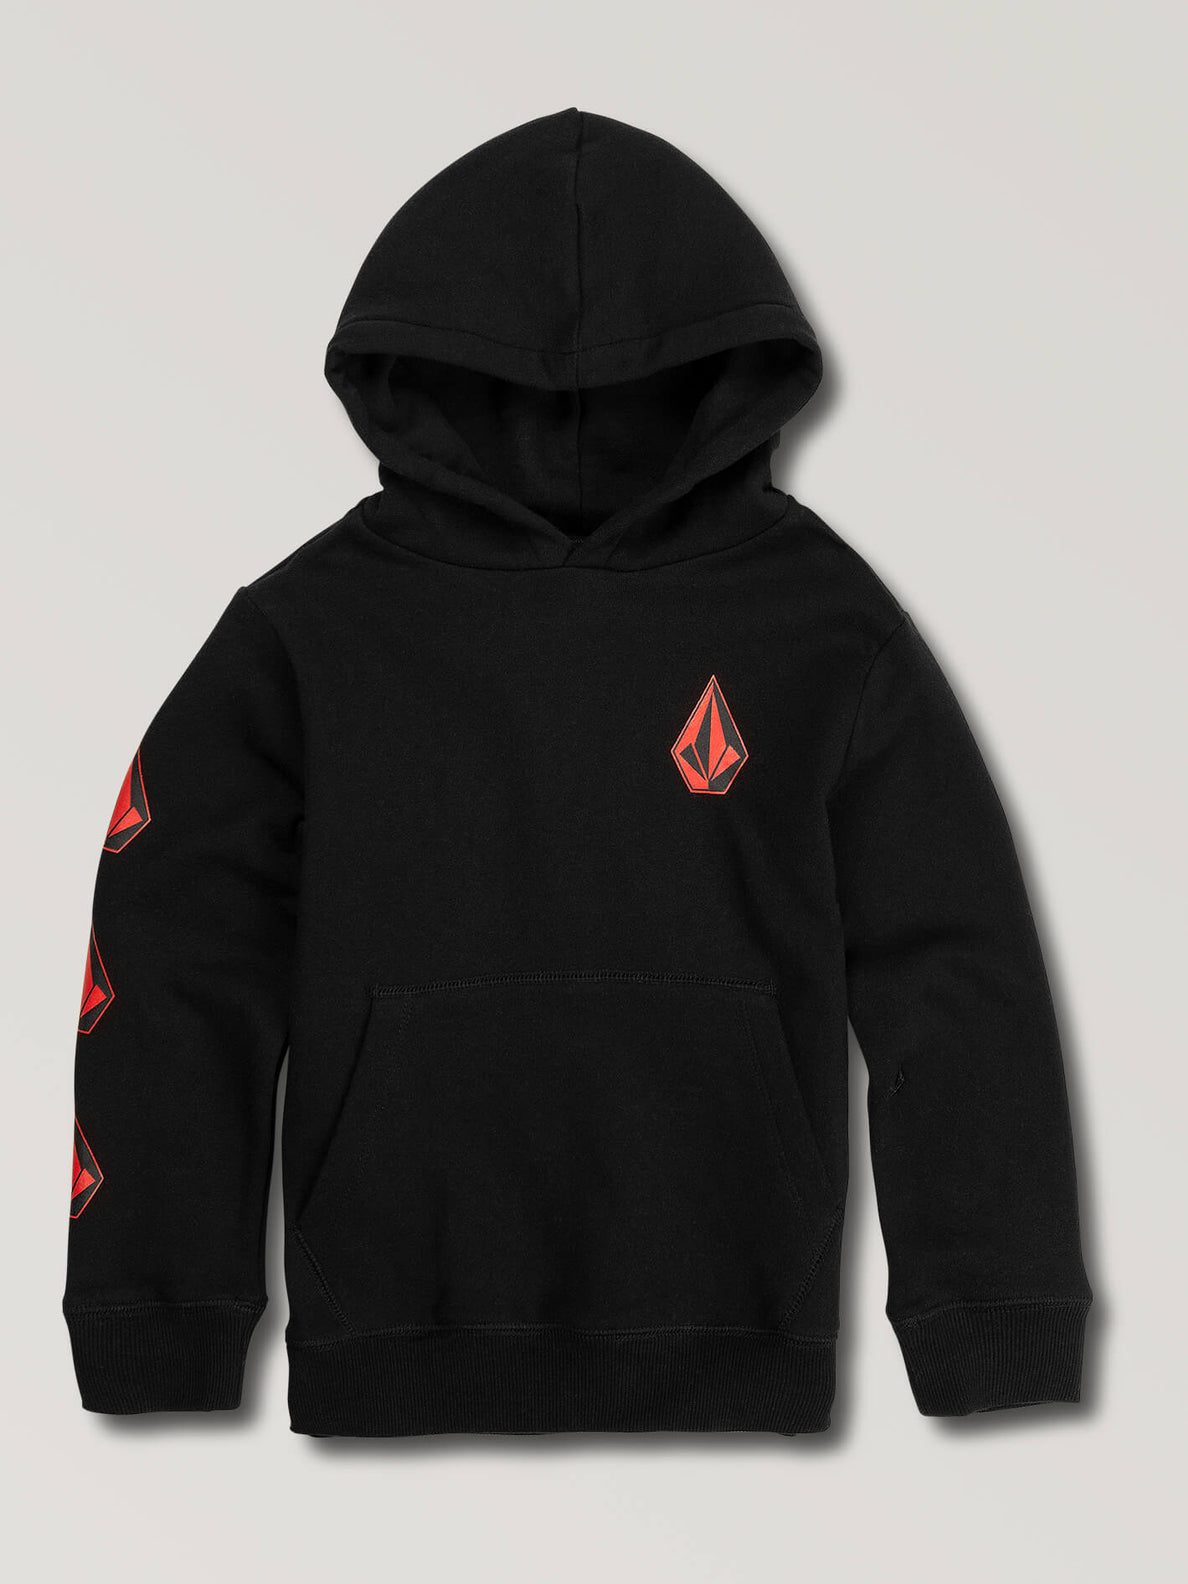 Little Boys Deadly Stones Pullover Hoodie In Black Red, Front View